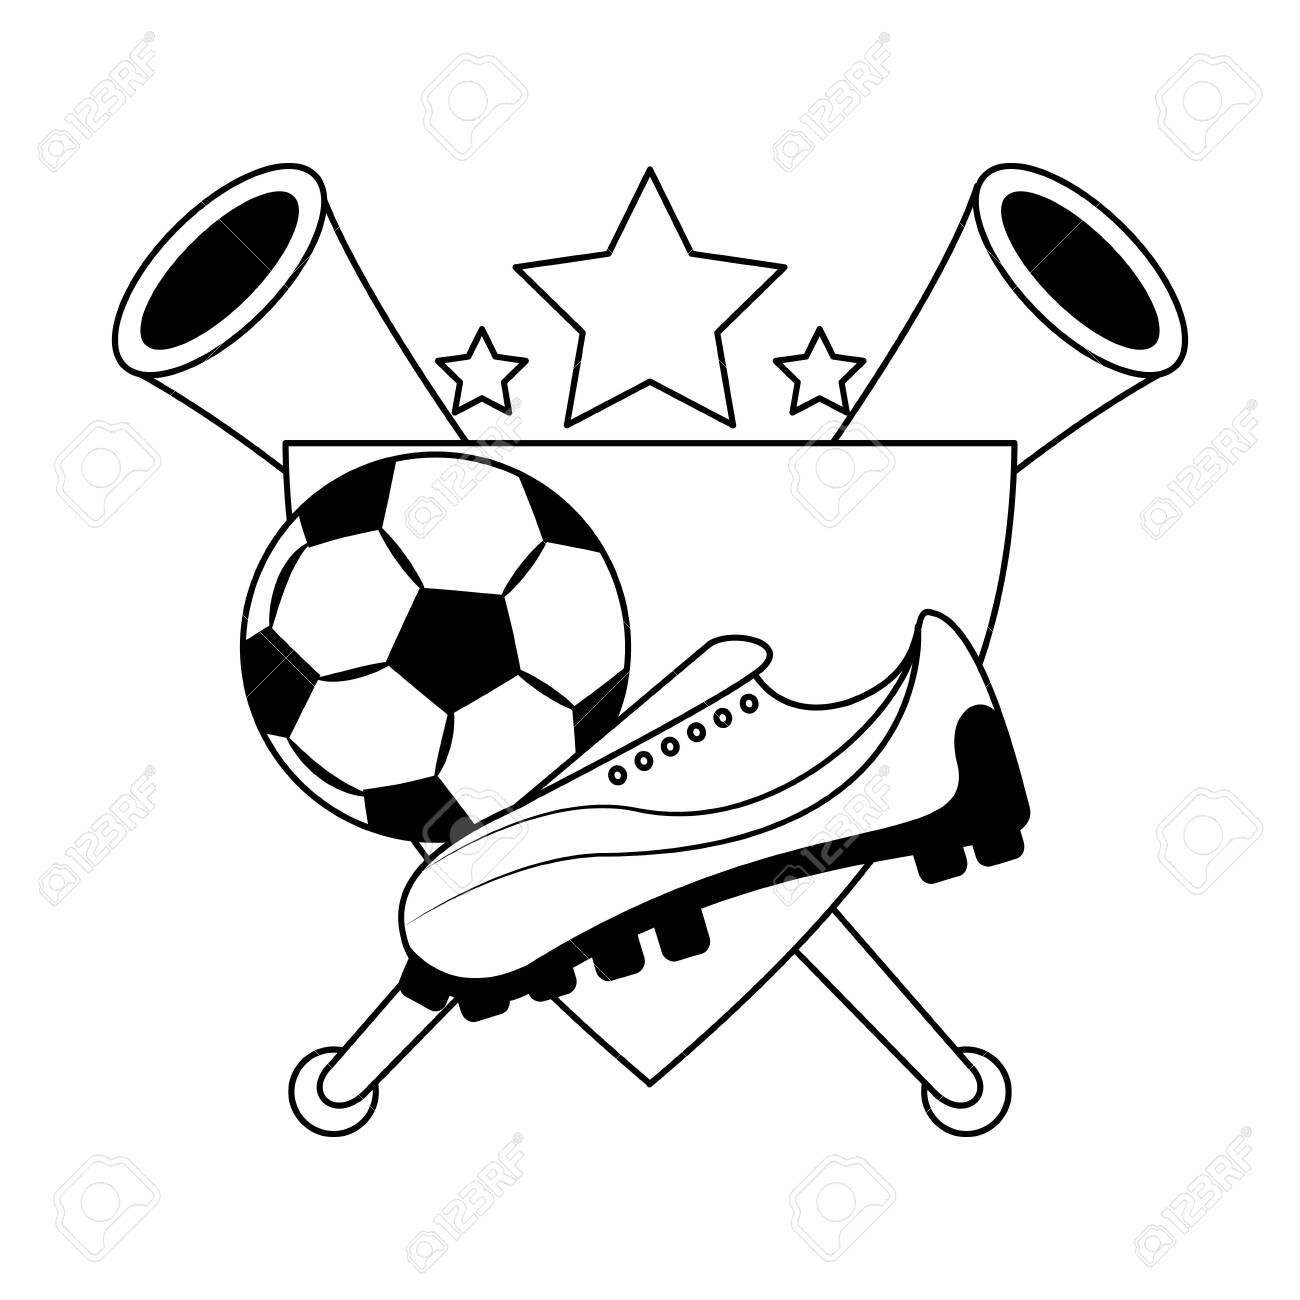 Soccer Football Sport Game Competition Play Activity Champion Player And Game Objects Cartoo Competition Games Graphic Design Illustration Illustration Design